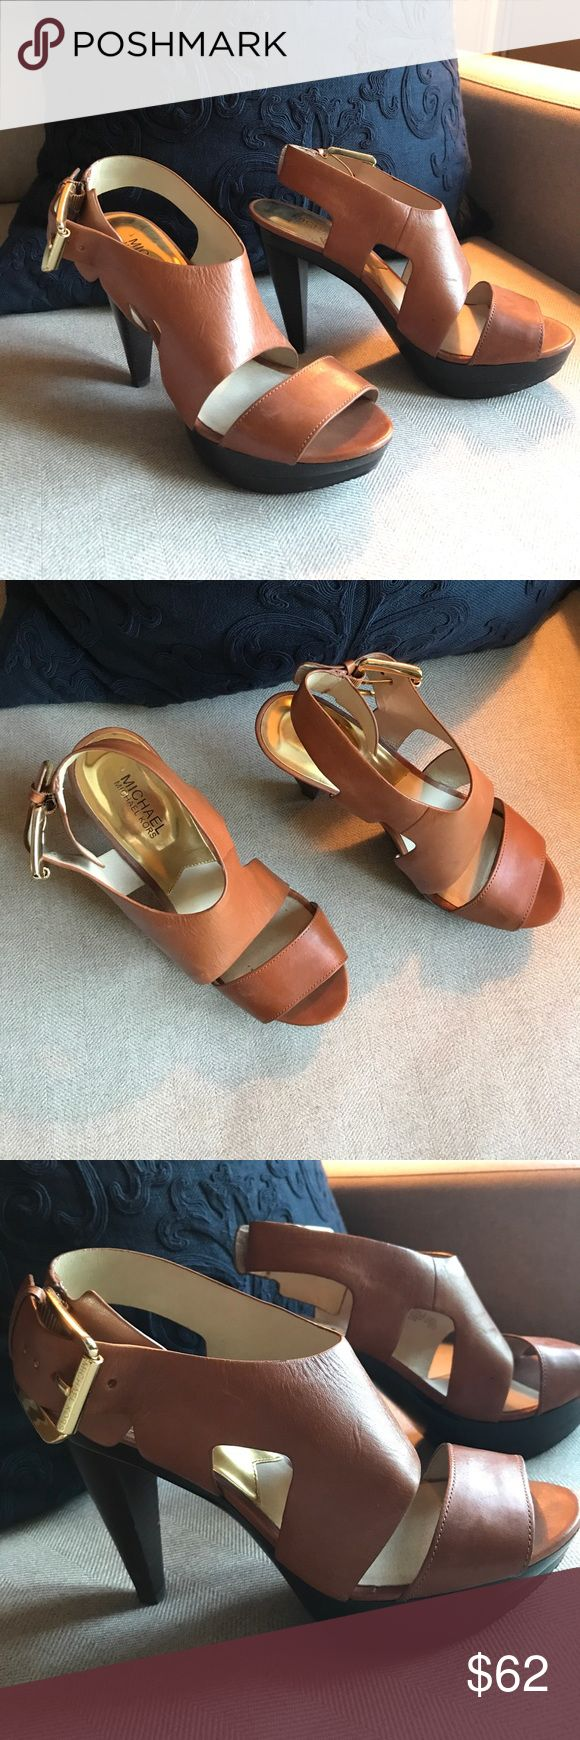 MICHAEL Michael Kors heels Very lightly worn! In excellent shape. Love these shoes for summer and can easily transition into fall. Must have! Heel measurements located in the pictures. MICHAEL Michael Kors Shoes Heels